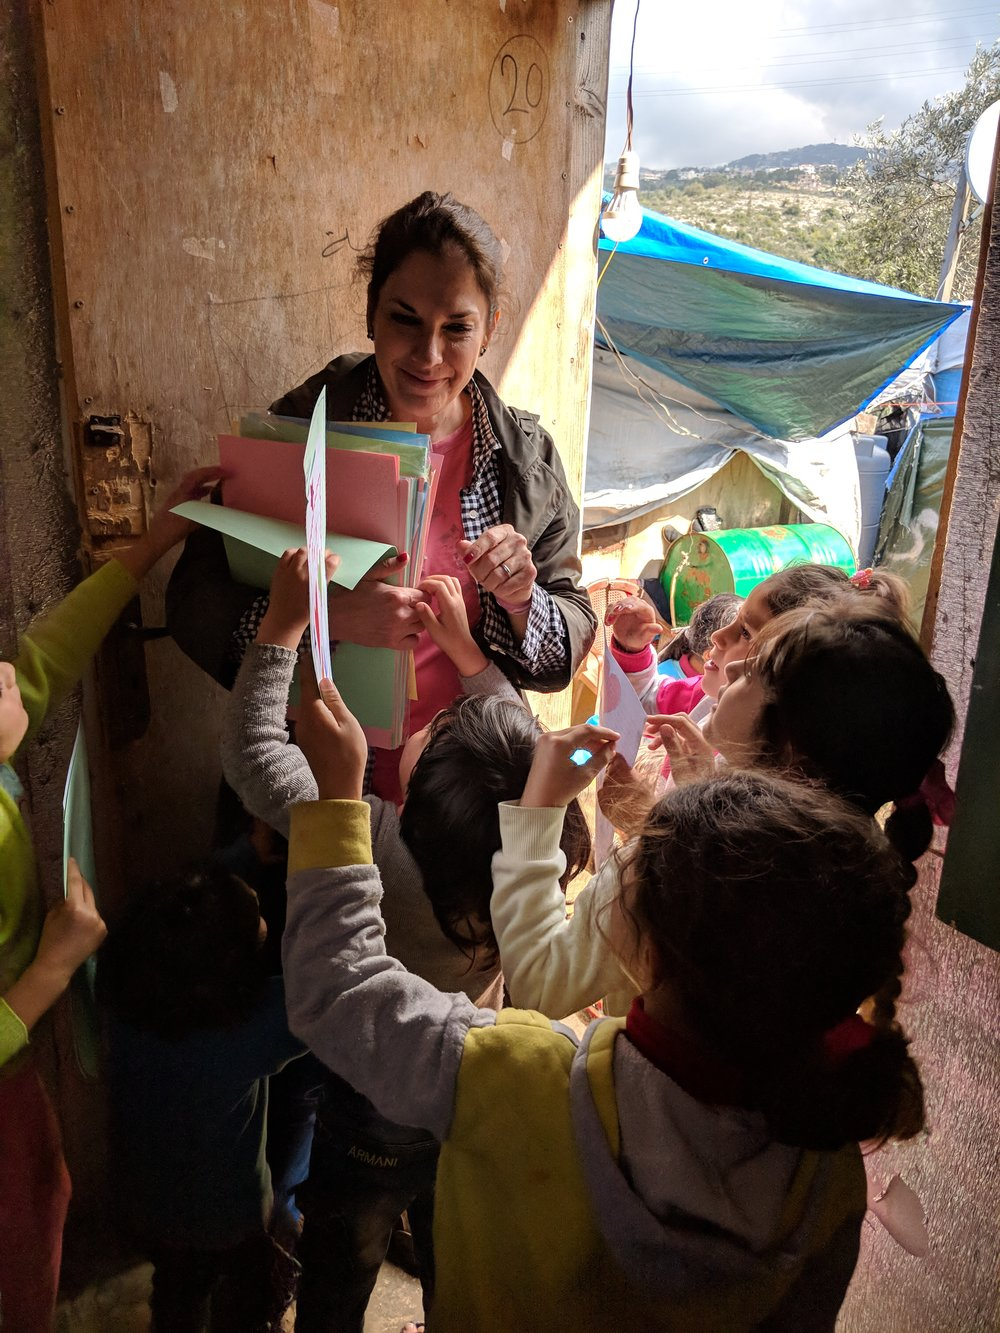 Hudson woman finds calling to help Syrian refugee children - Read the articleBy Massarah MikatFriday, March 9, 2018